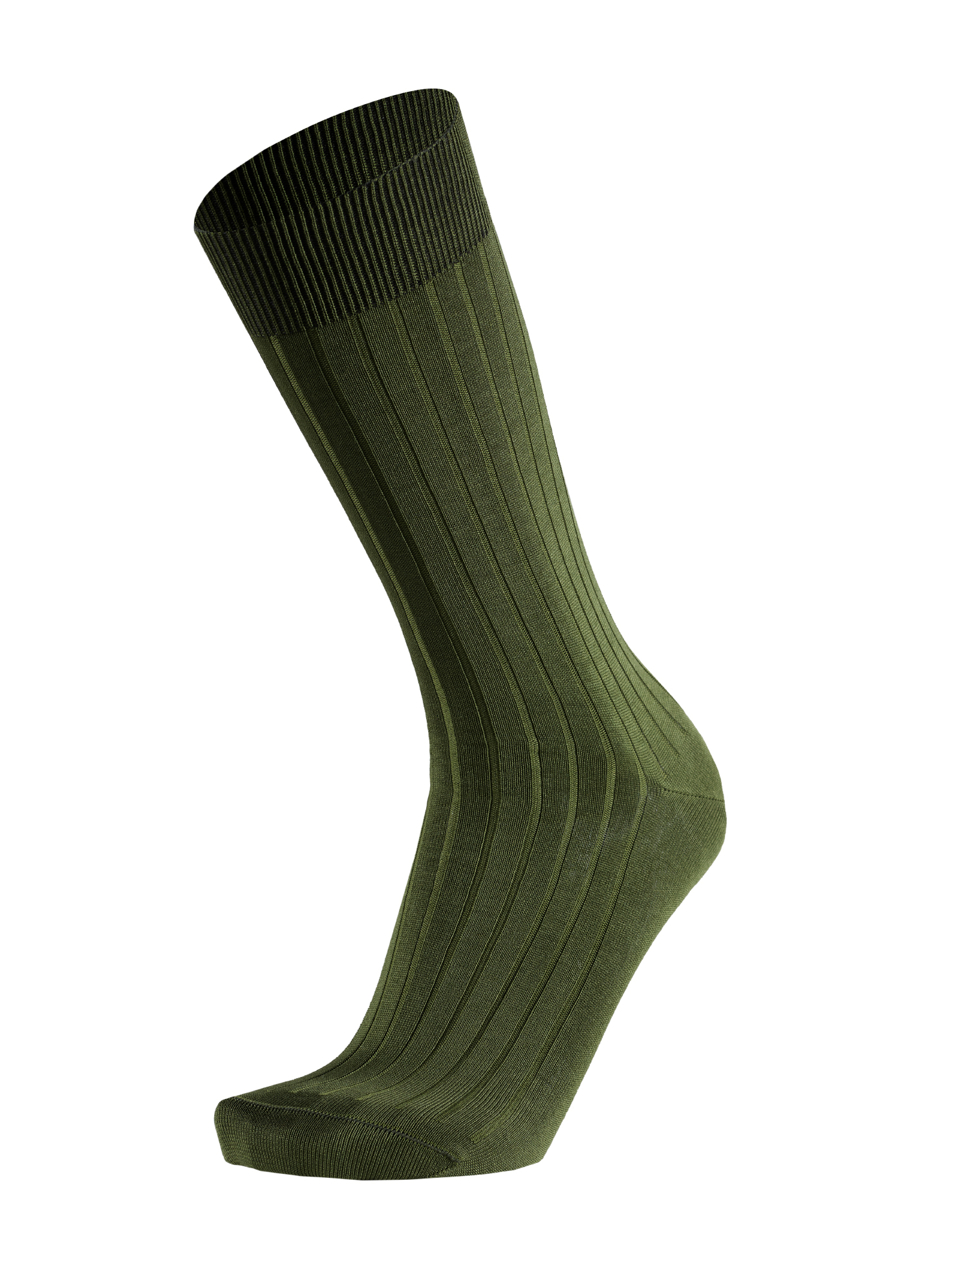 Picture of CANALÉ OLIVE GREEN FIL D'ECOSSE